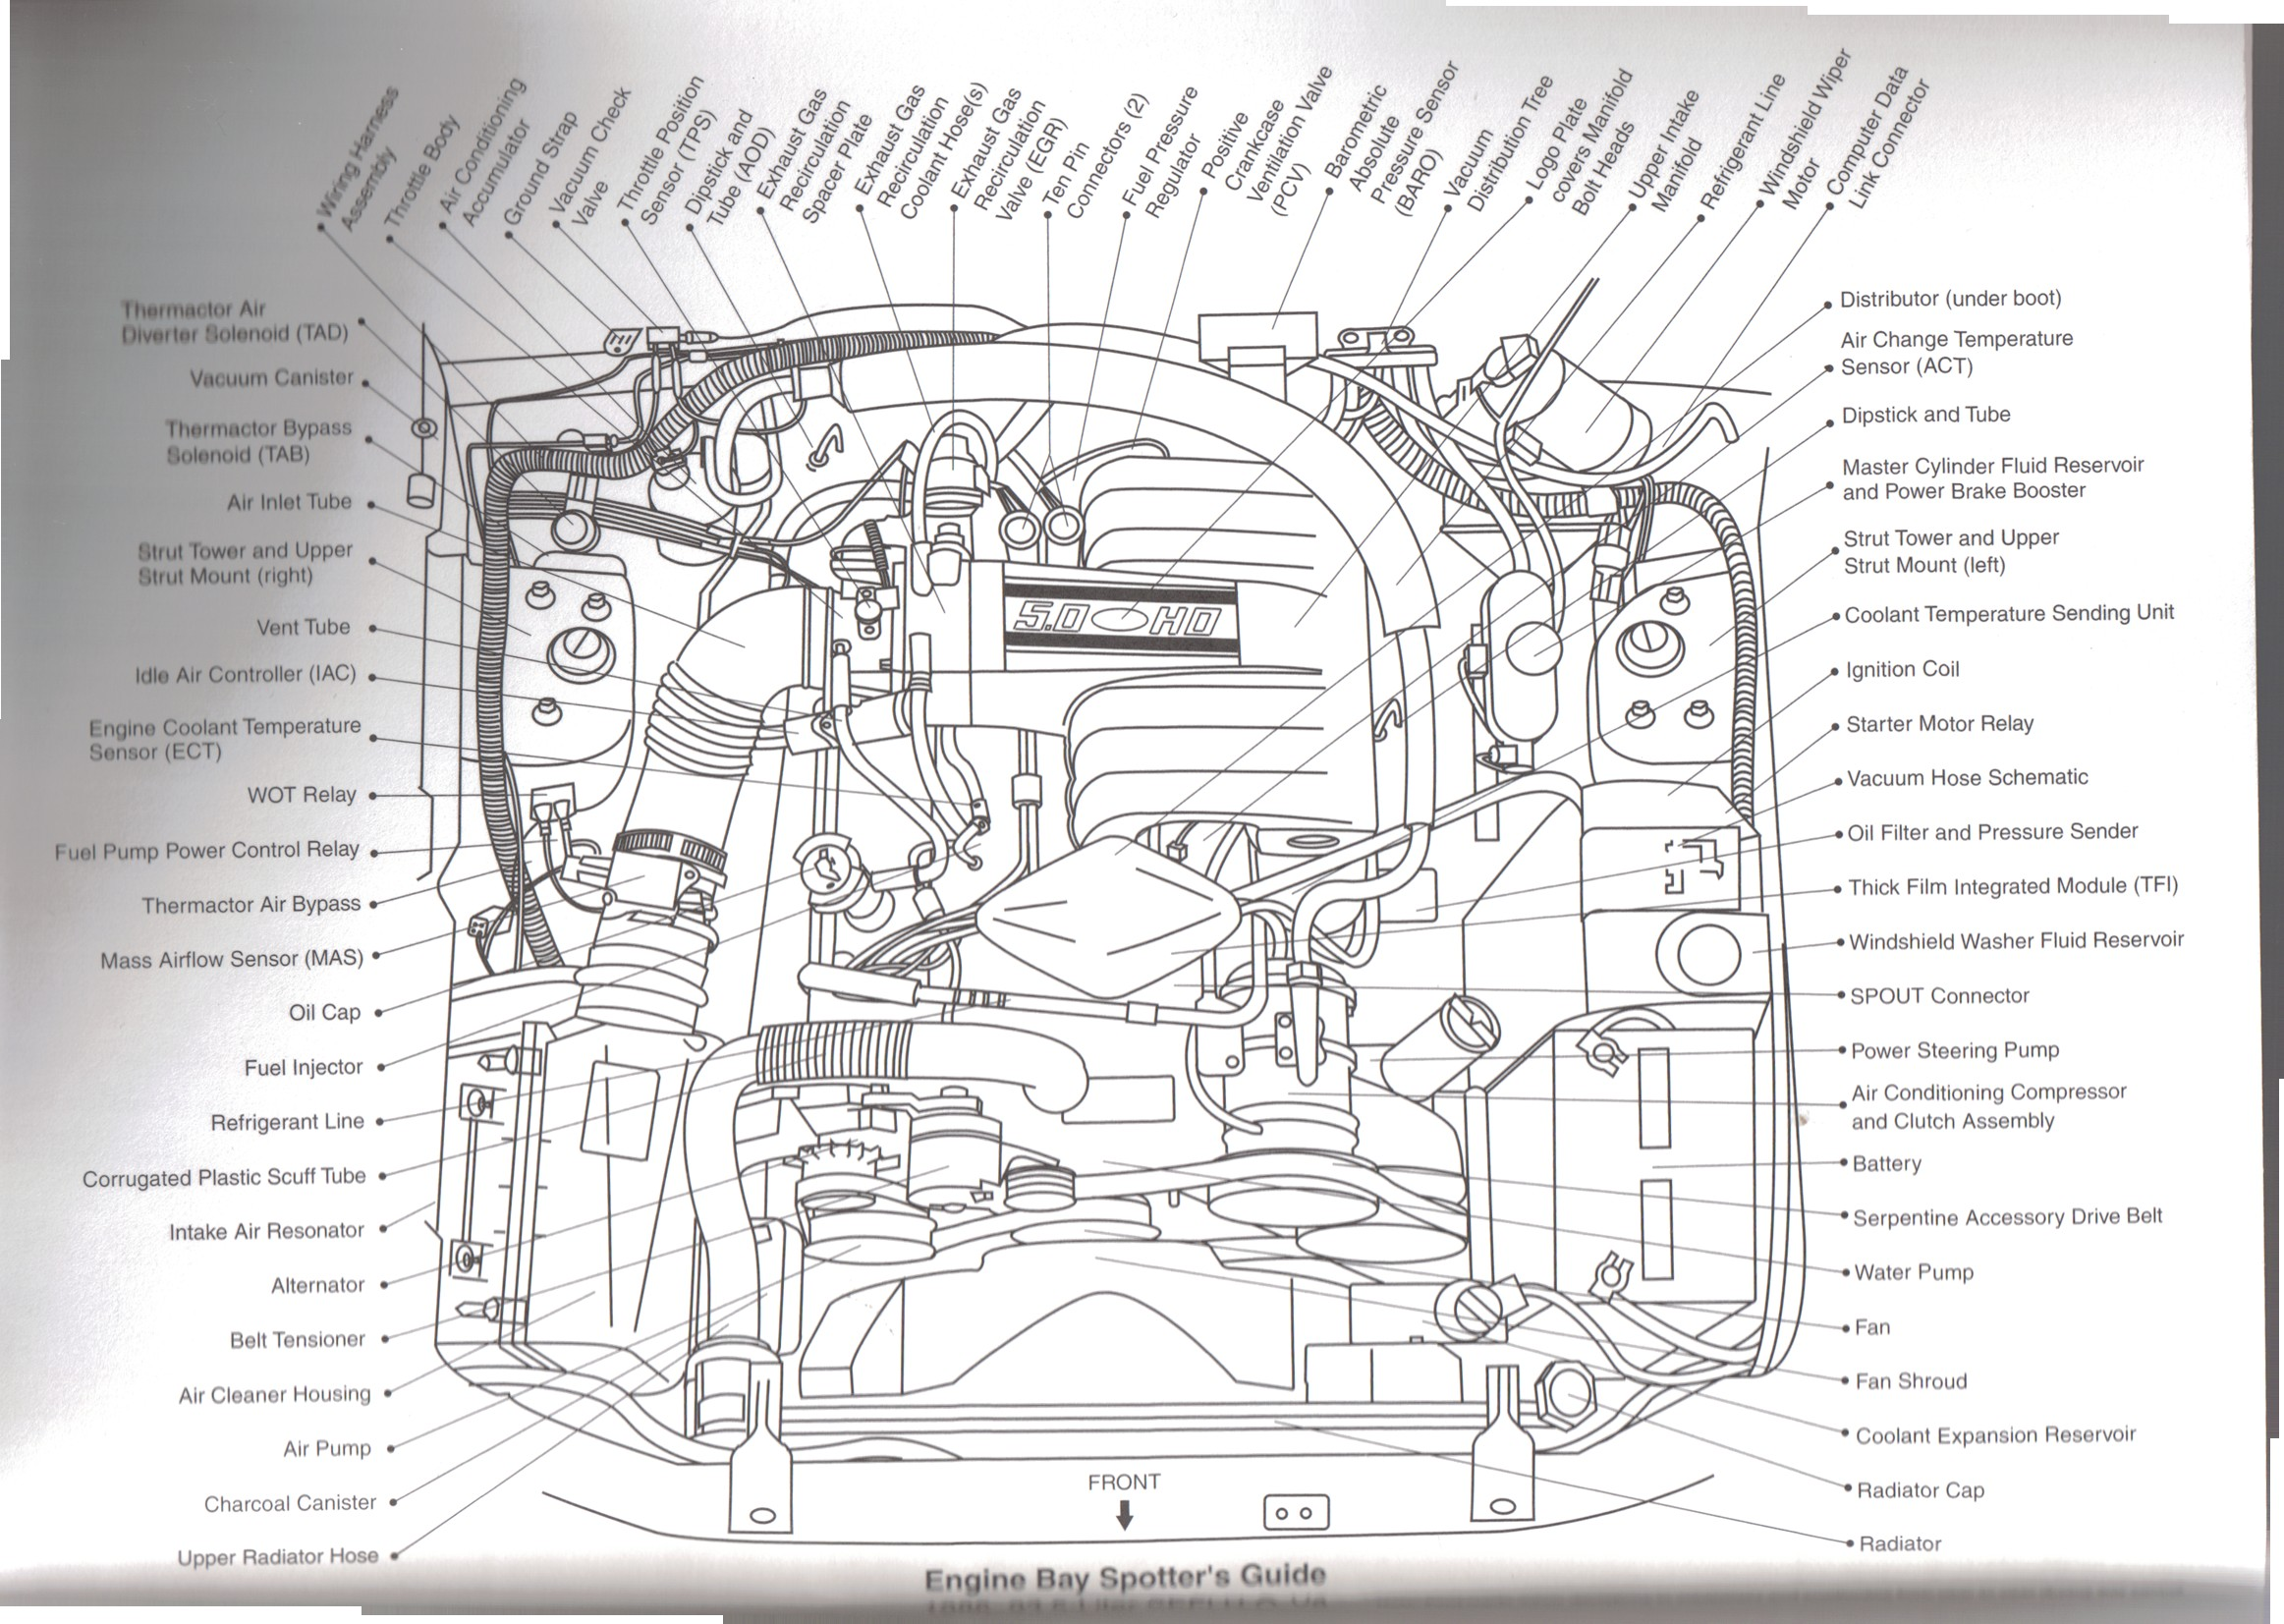 1995 ford f150 5 0 engine diagram my wiring diagram rh detoxicrecenze com Ford 351 Windsor Engine Diagram 86 Ford F-150 Engine Schematics